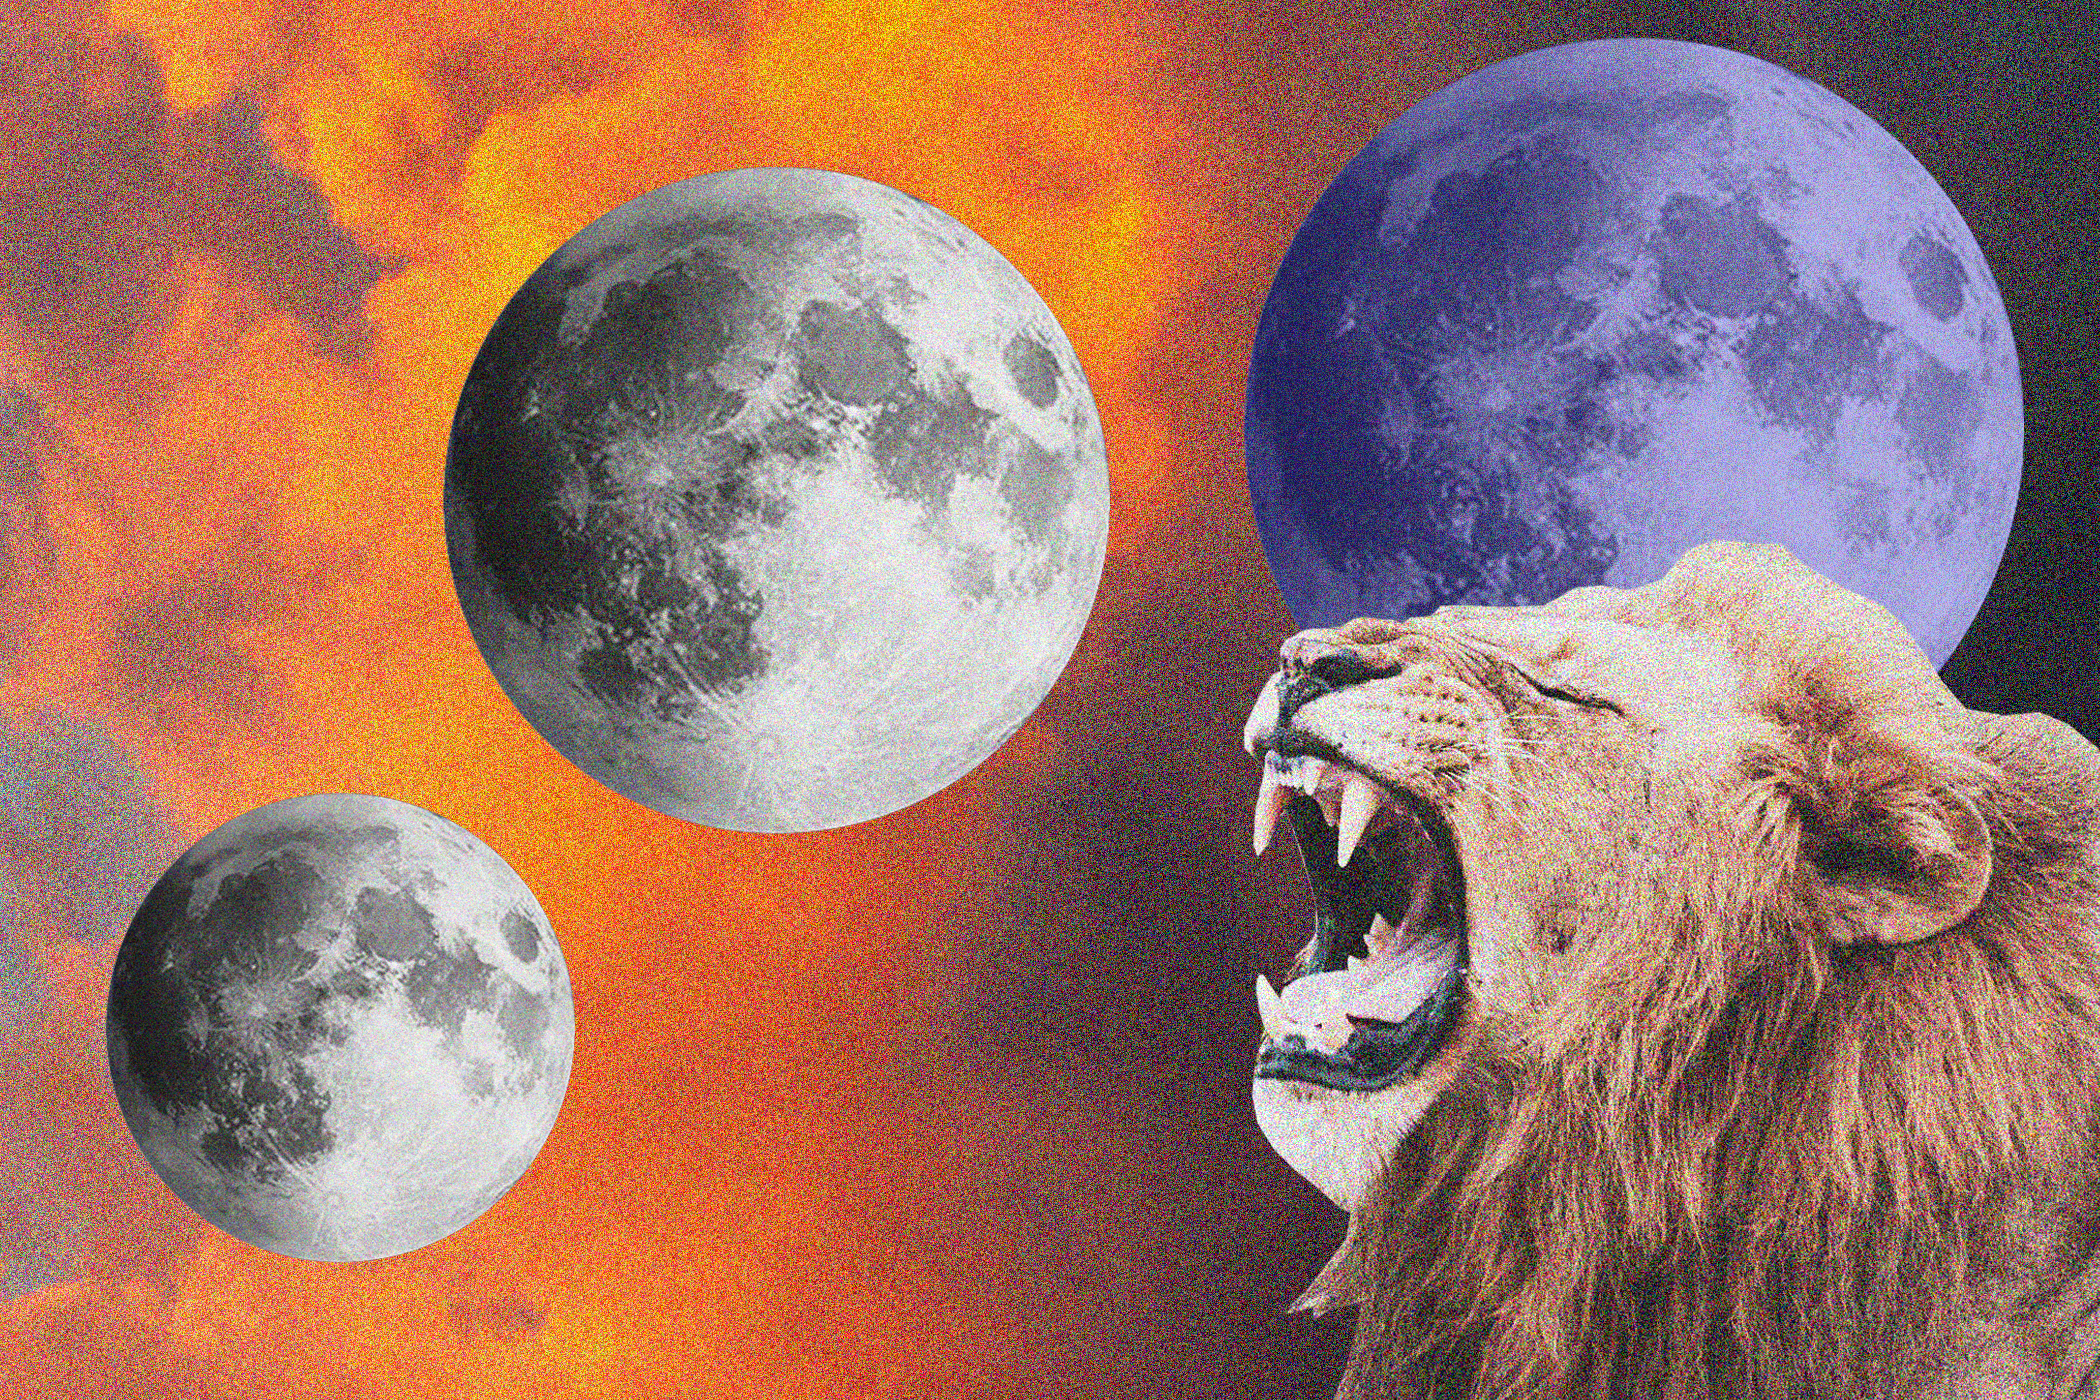 Lion roaring at two blue moons with a red and orange cloudy sky in the background.